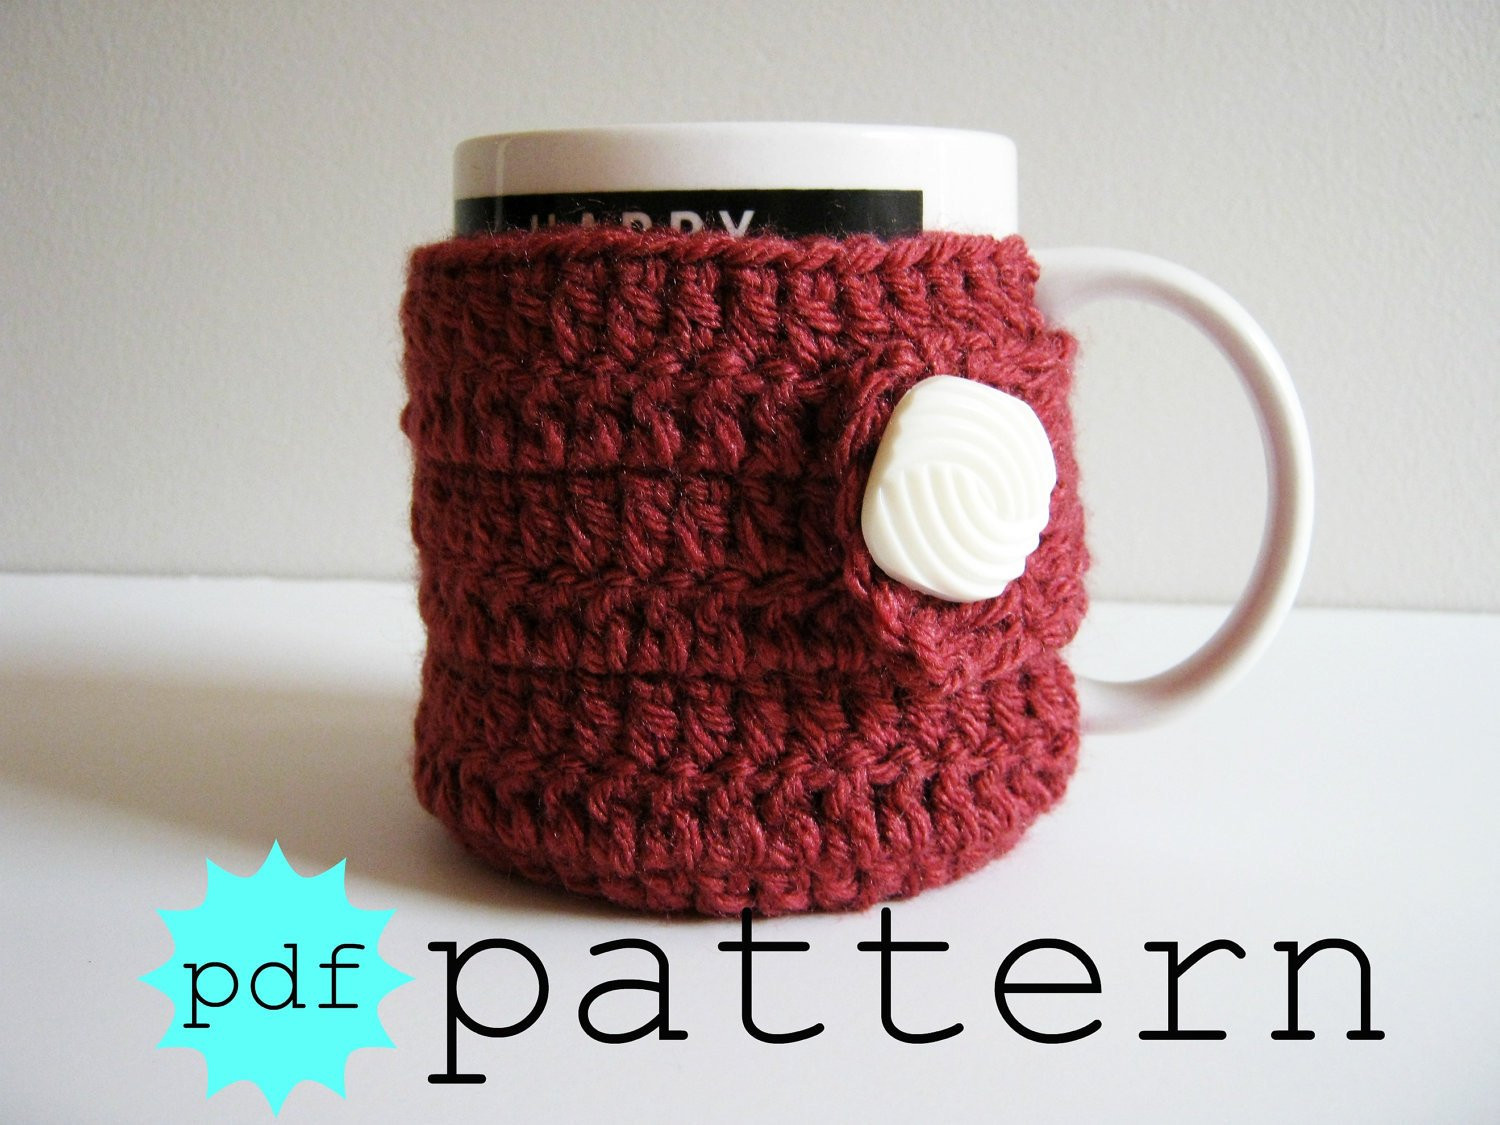 Crochet Coffee Cup Cozy Luxury Pdf Crochet Pattern Coffee Mug Cozy with button by Of Crochet Coffee Cup Cozy Elegant Sunny Stitching Pinned It & Did It Mug Cozy Crochet